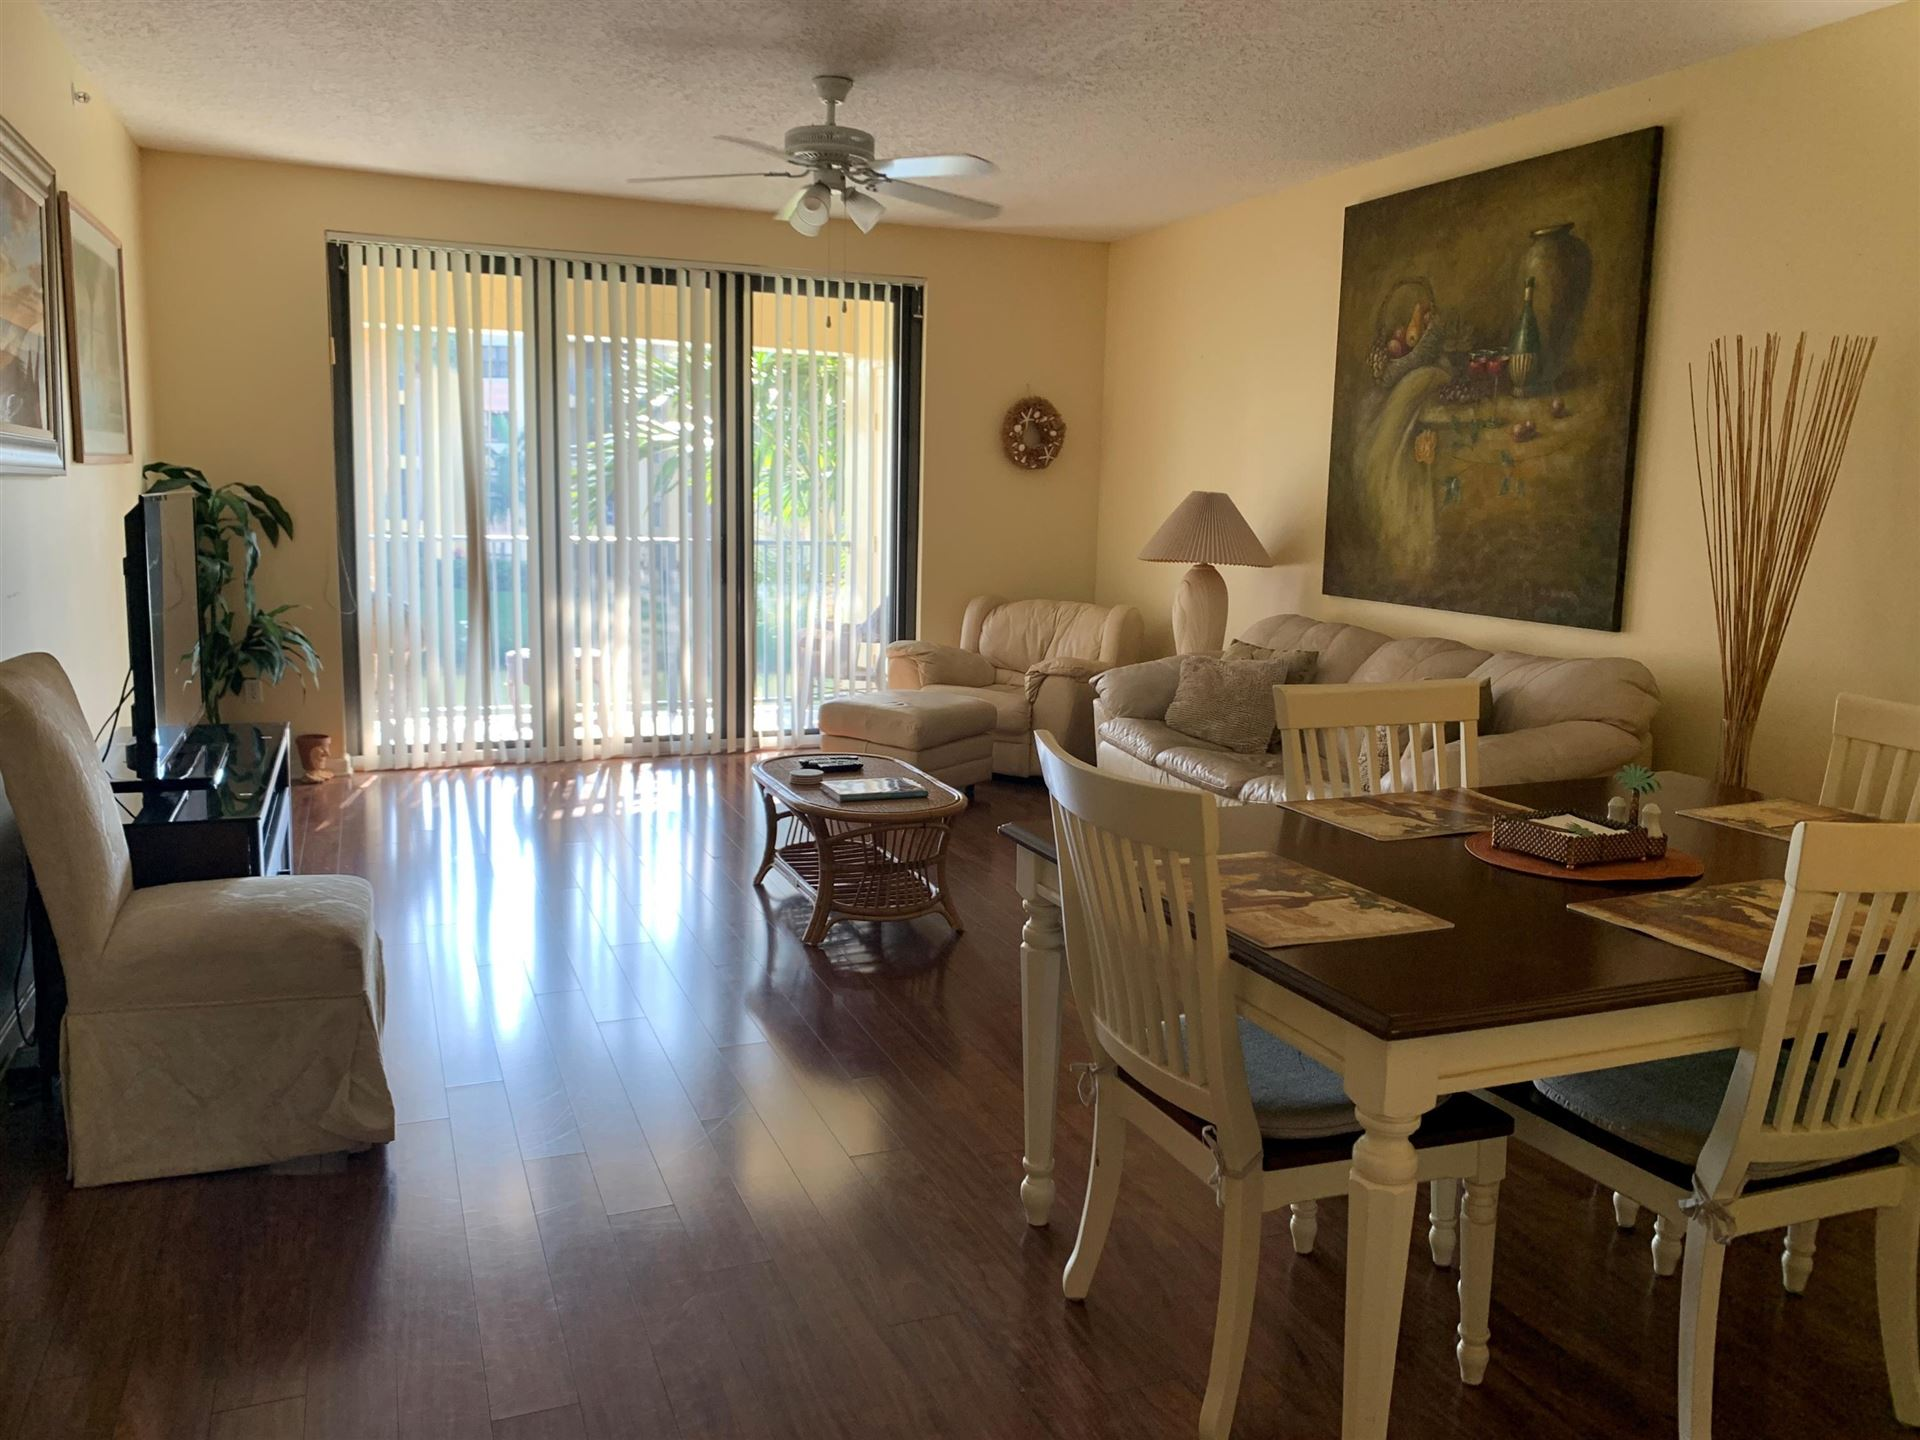 Photo of 200 Uno Lago Drive #202, Juno Beach, FL 33408 (MLS # RX-10612851)